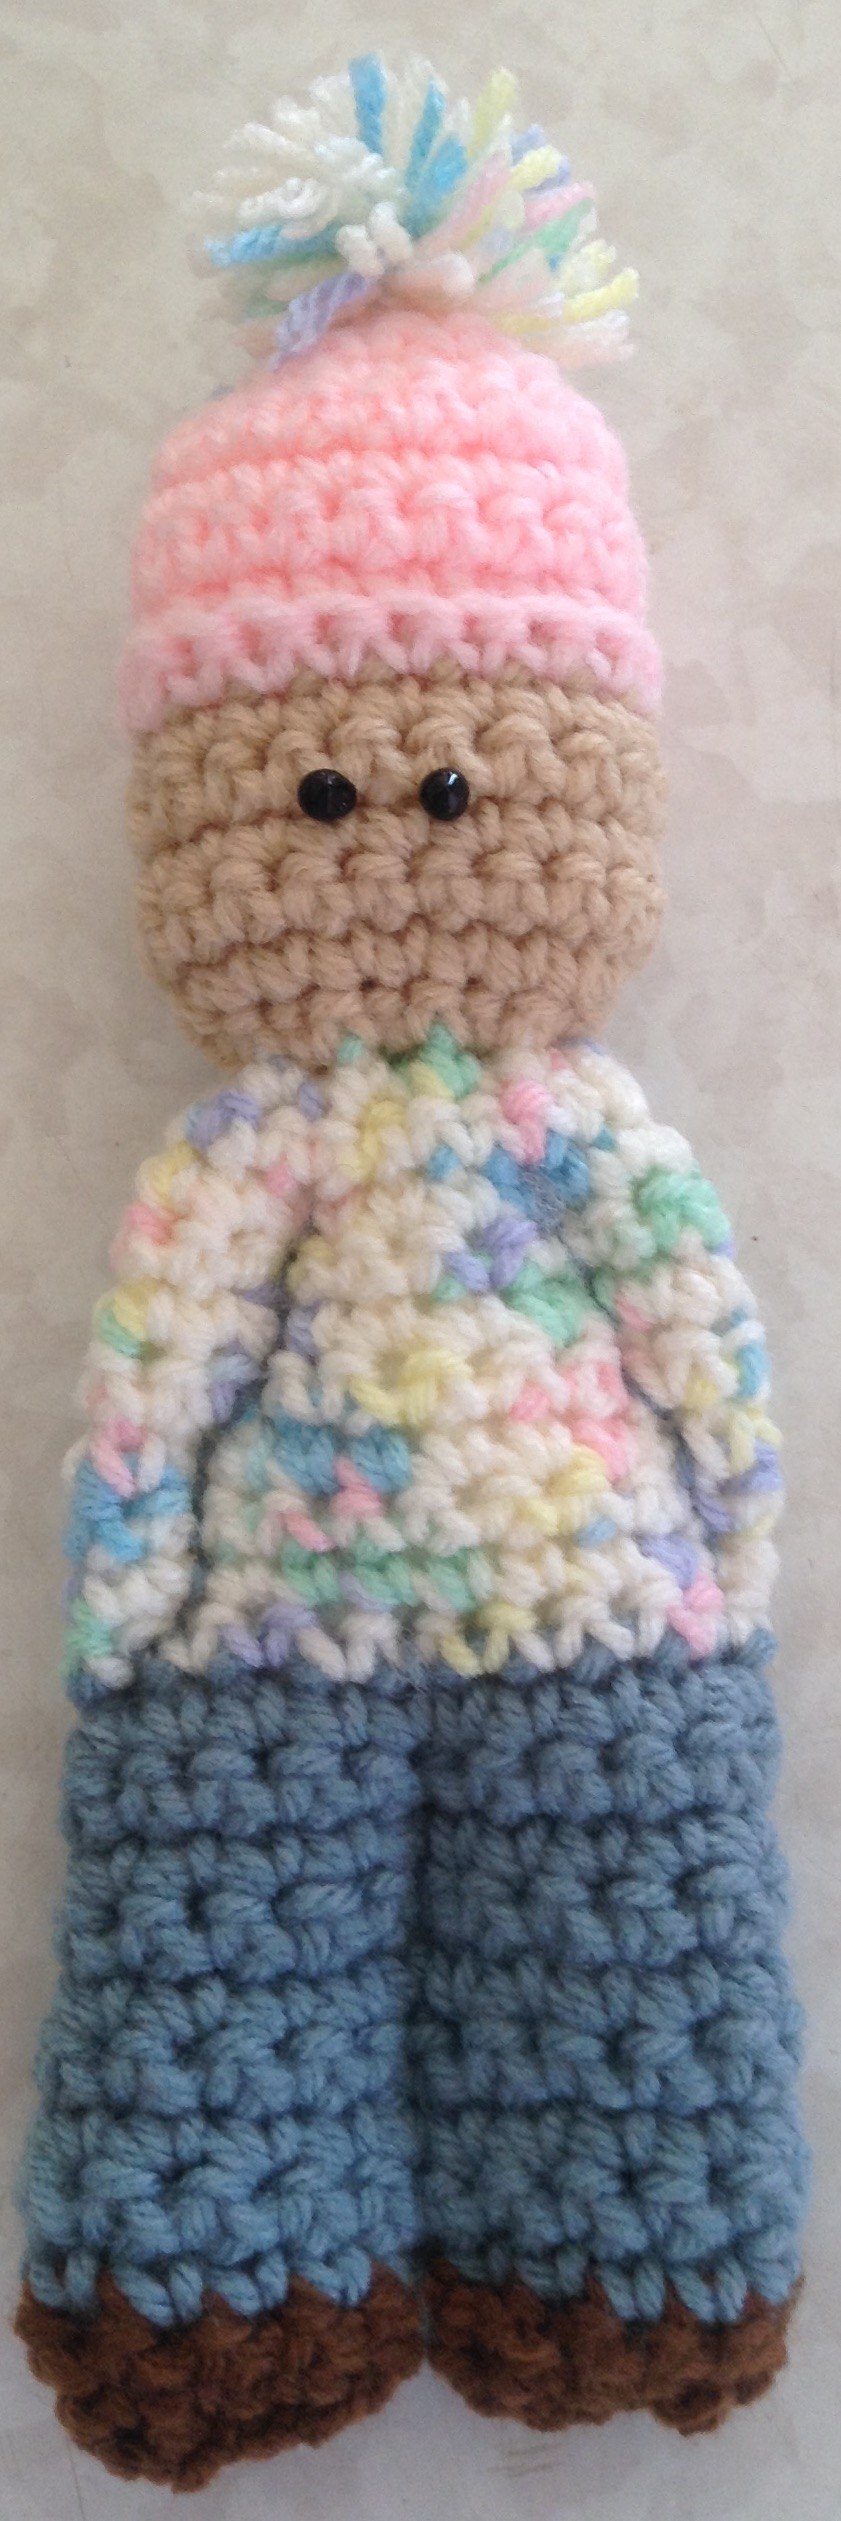 crocheted kaiizen doll